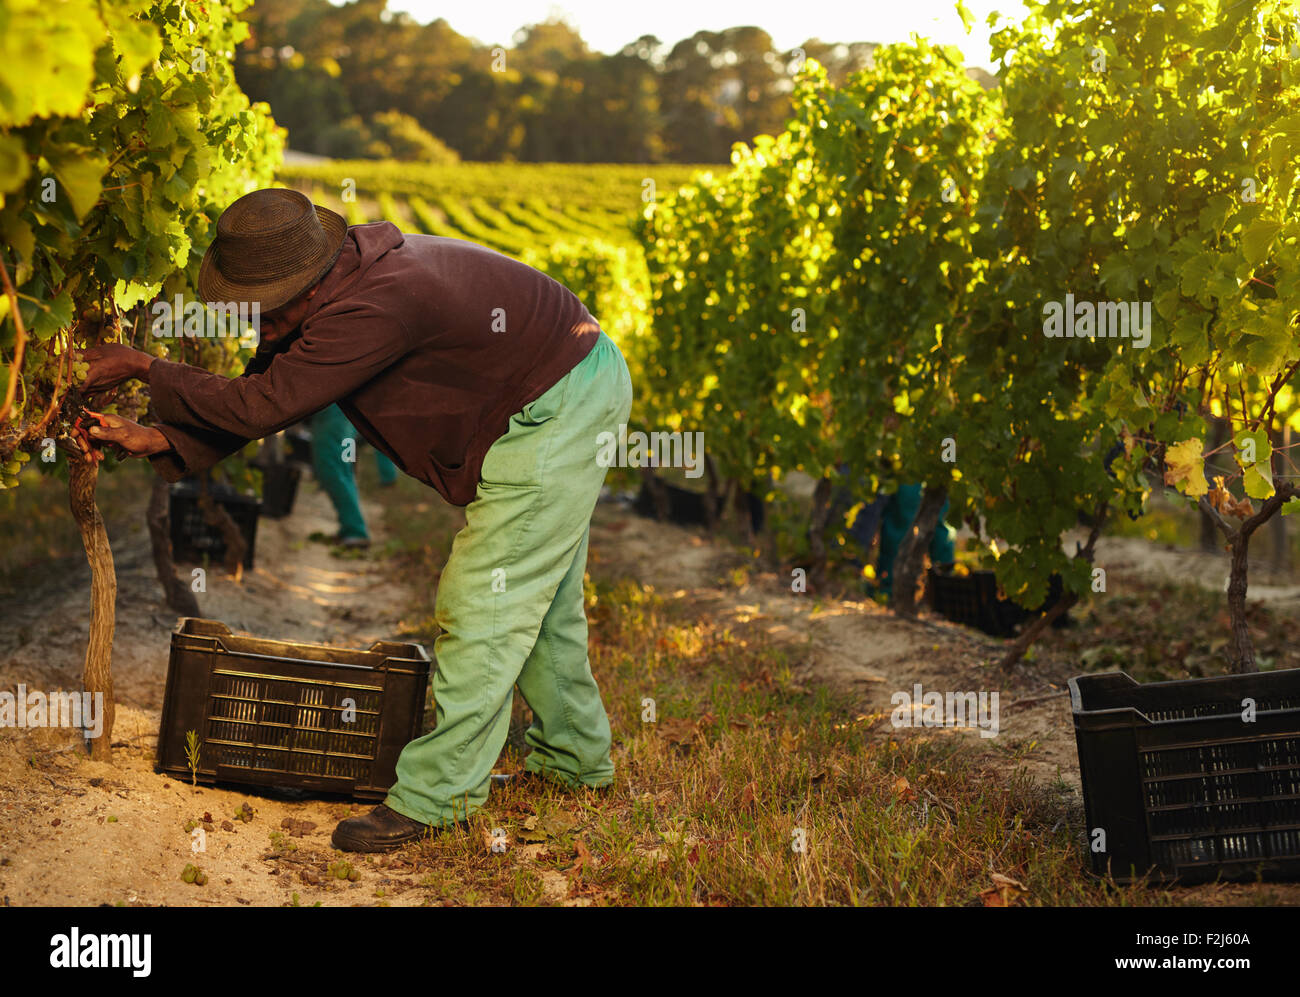 African farmer harvesting grapes in vineyard. Man pruning grapes from vine and collecting in plastic bins. - Stock Image